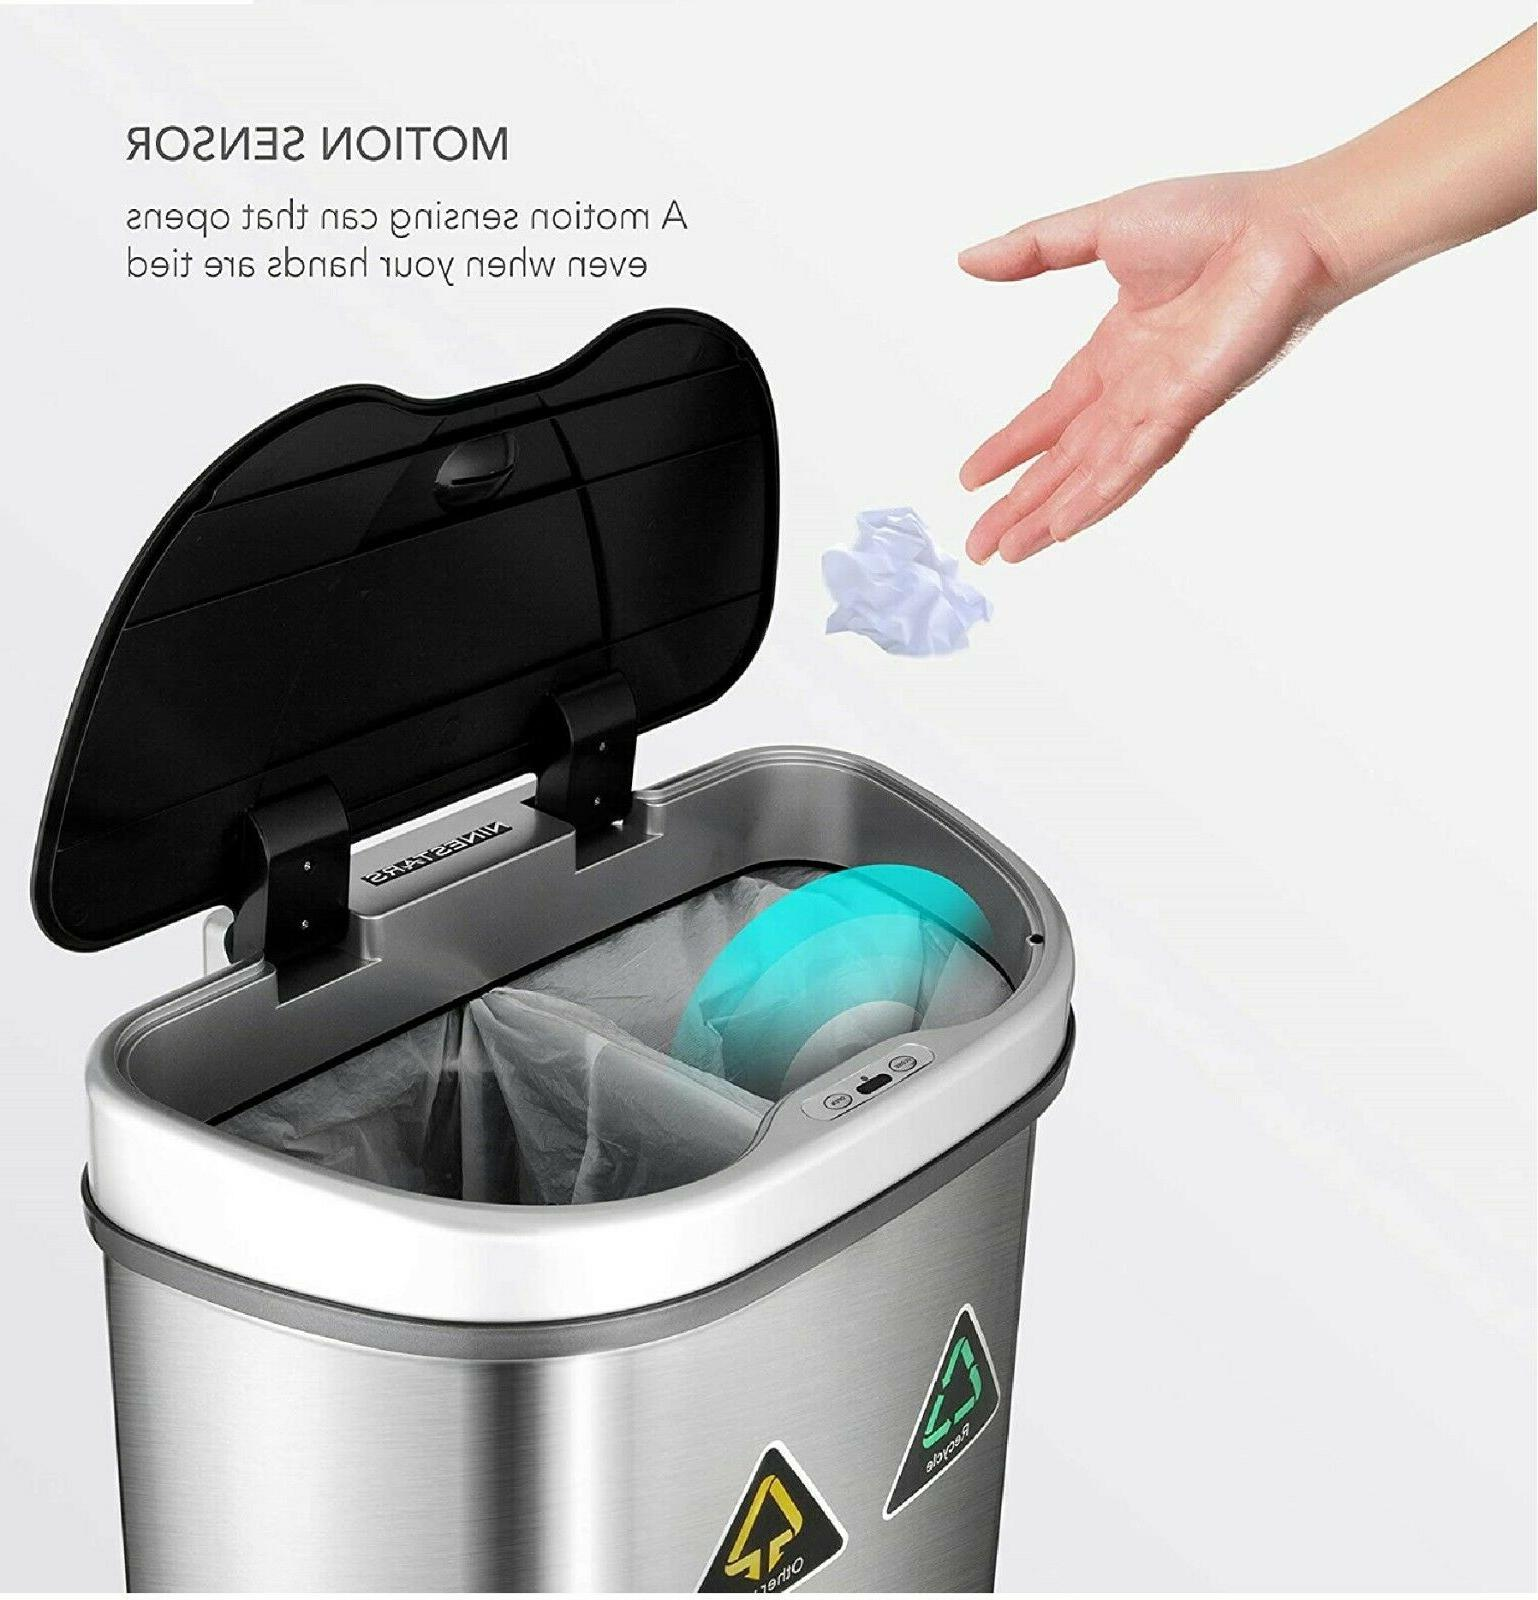 Dual Trash Can Bin for Garbage and Recycling with Motion Sensor 18 gallon